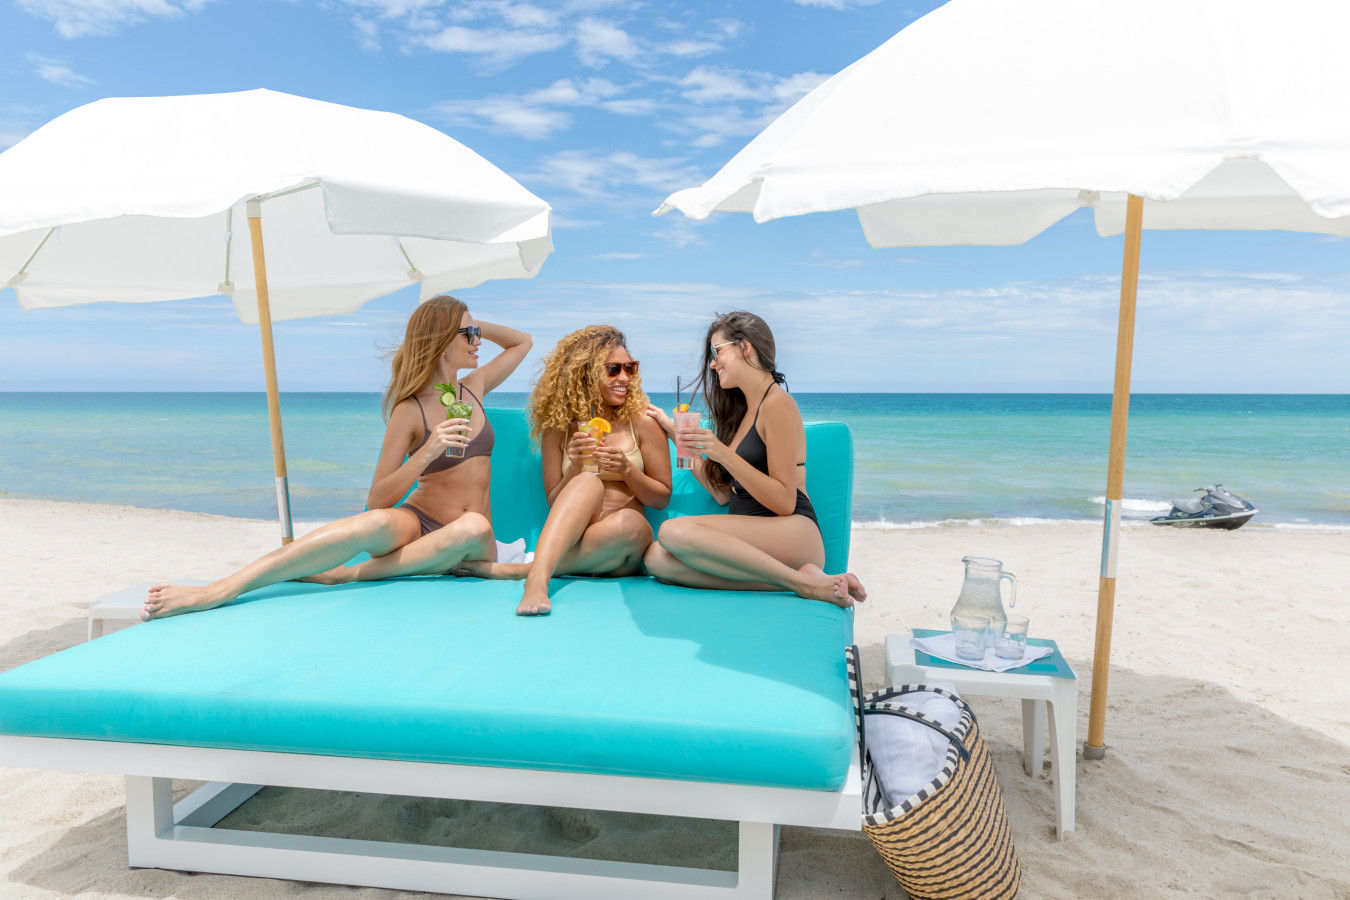 Girls Getaway - Jetskis and Daybeds at Trump International Beach Resort